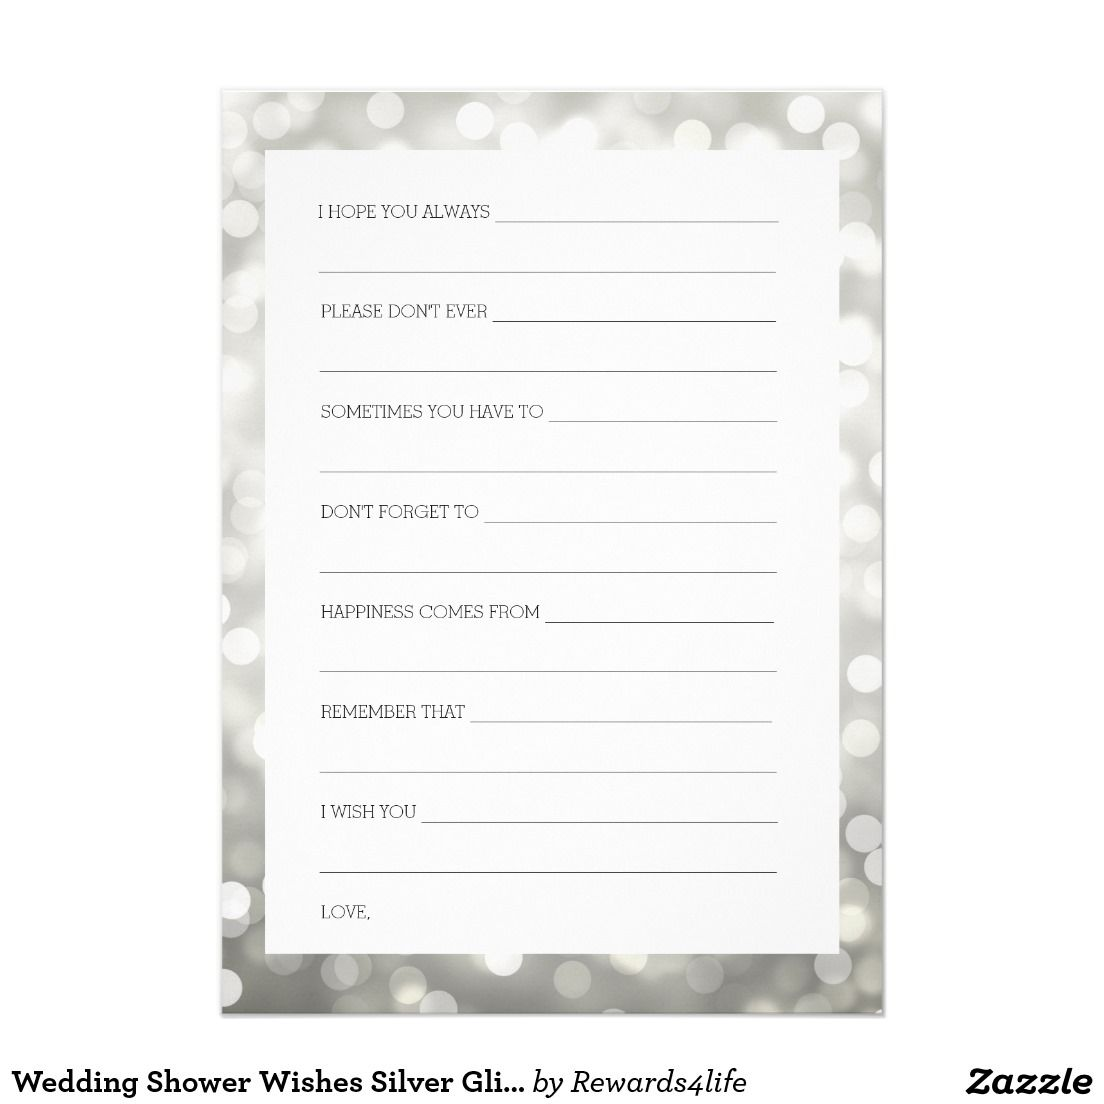 Wedding Shower Wishes Silver Glitter Lights Invitation Silver